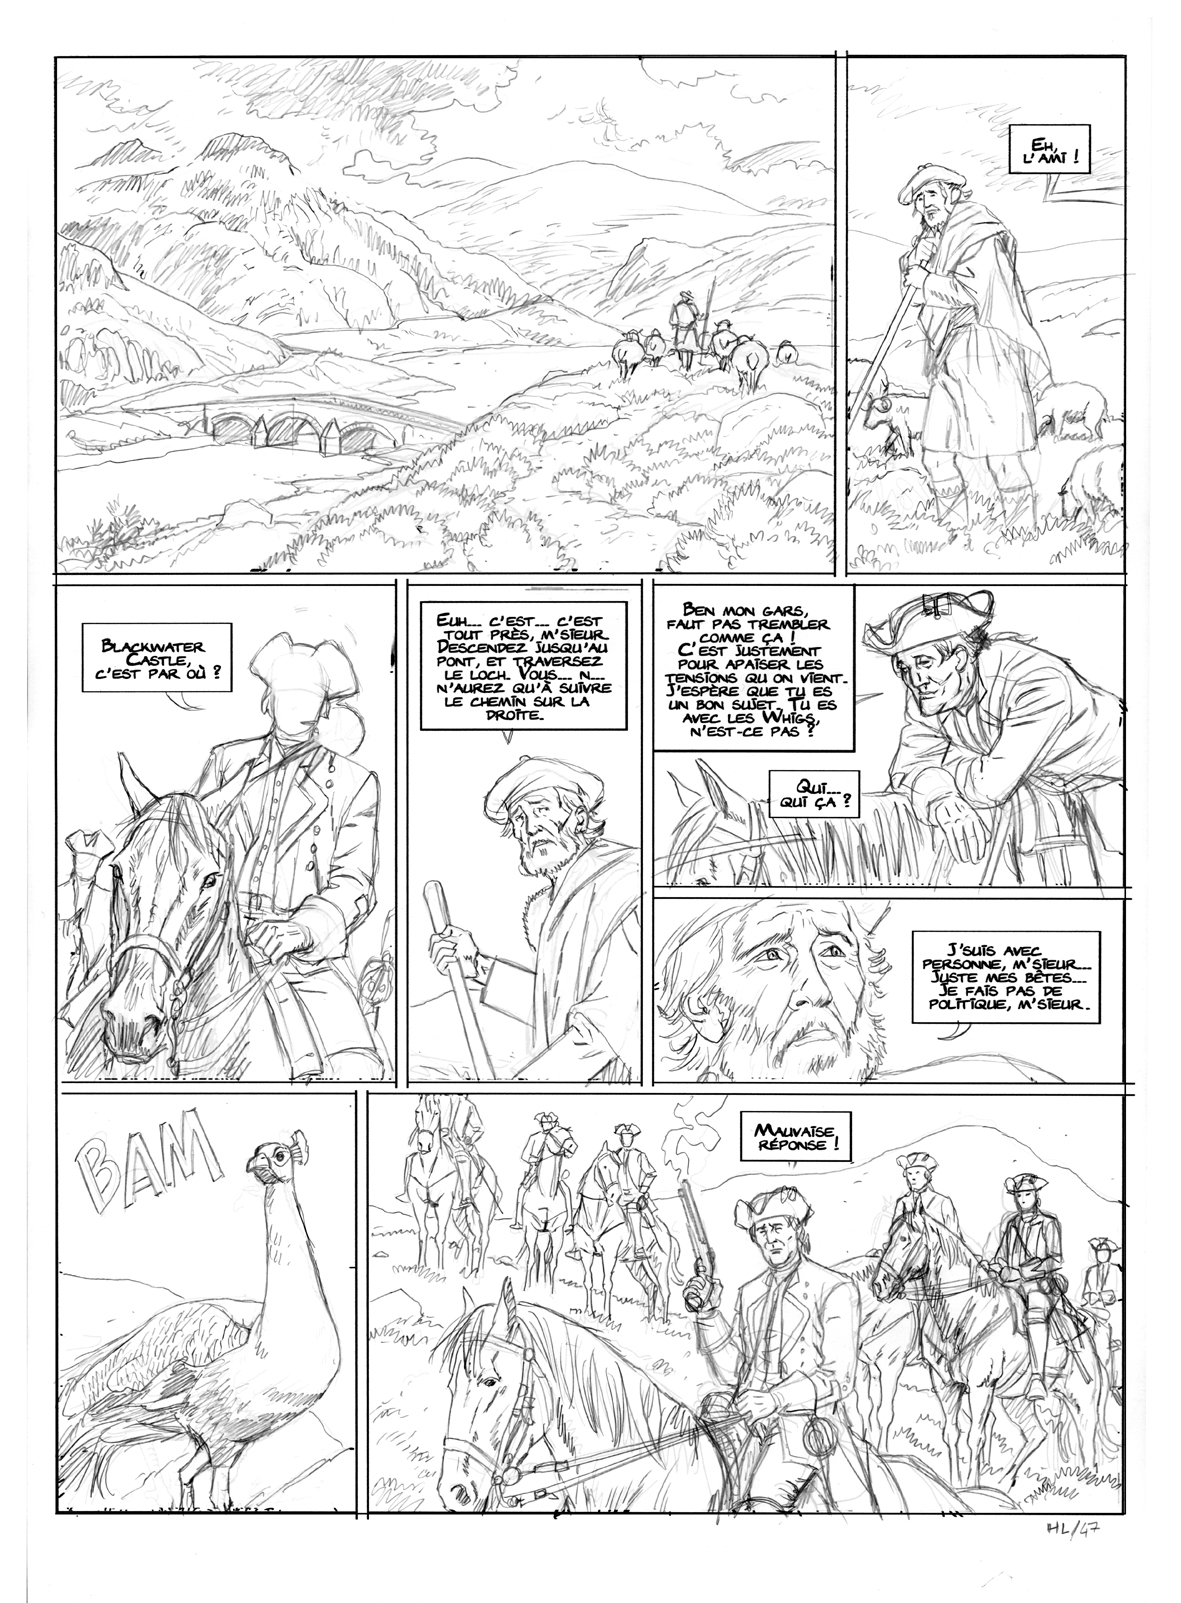 Highlands, planche 1 du tome 2, crayonné © Philippe Aymond